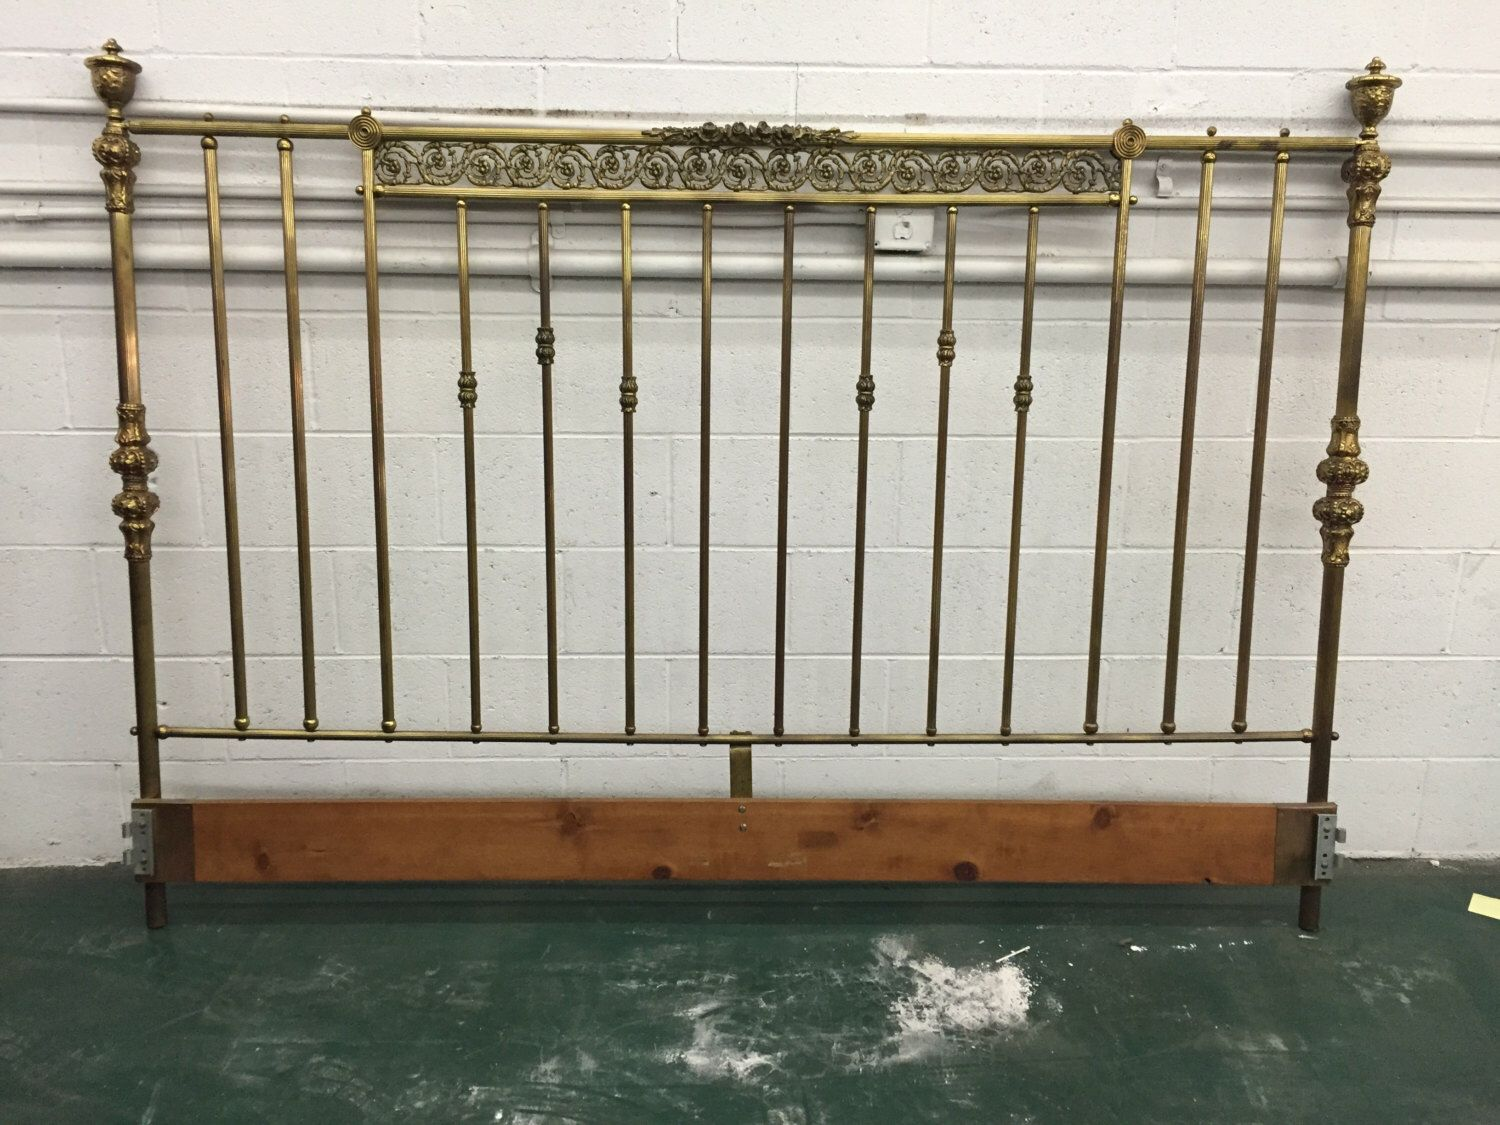 Original Headboards brass headboard - mid-1960's originalrappreruns on etsy https